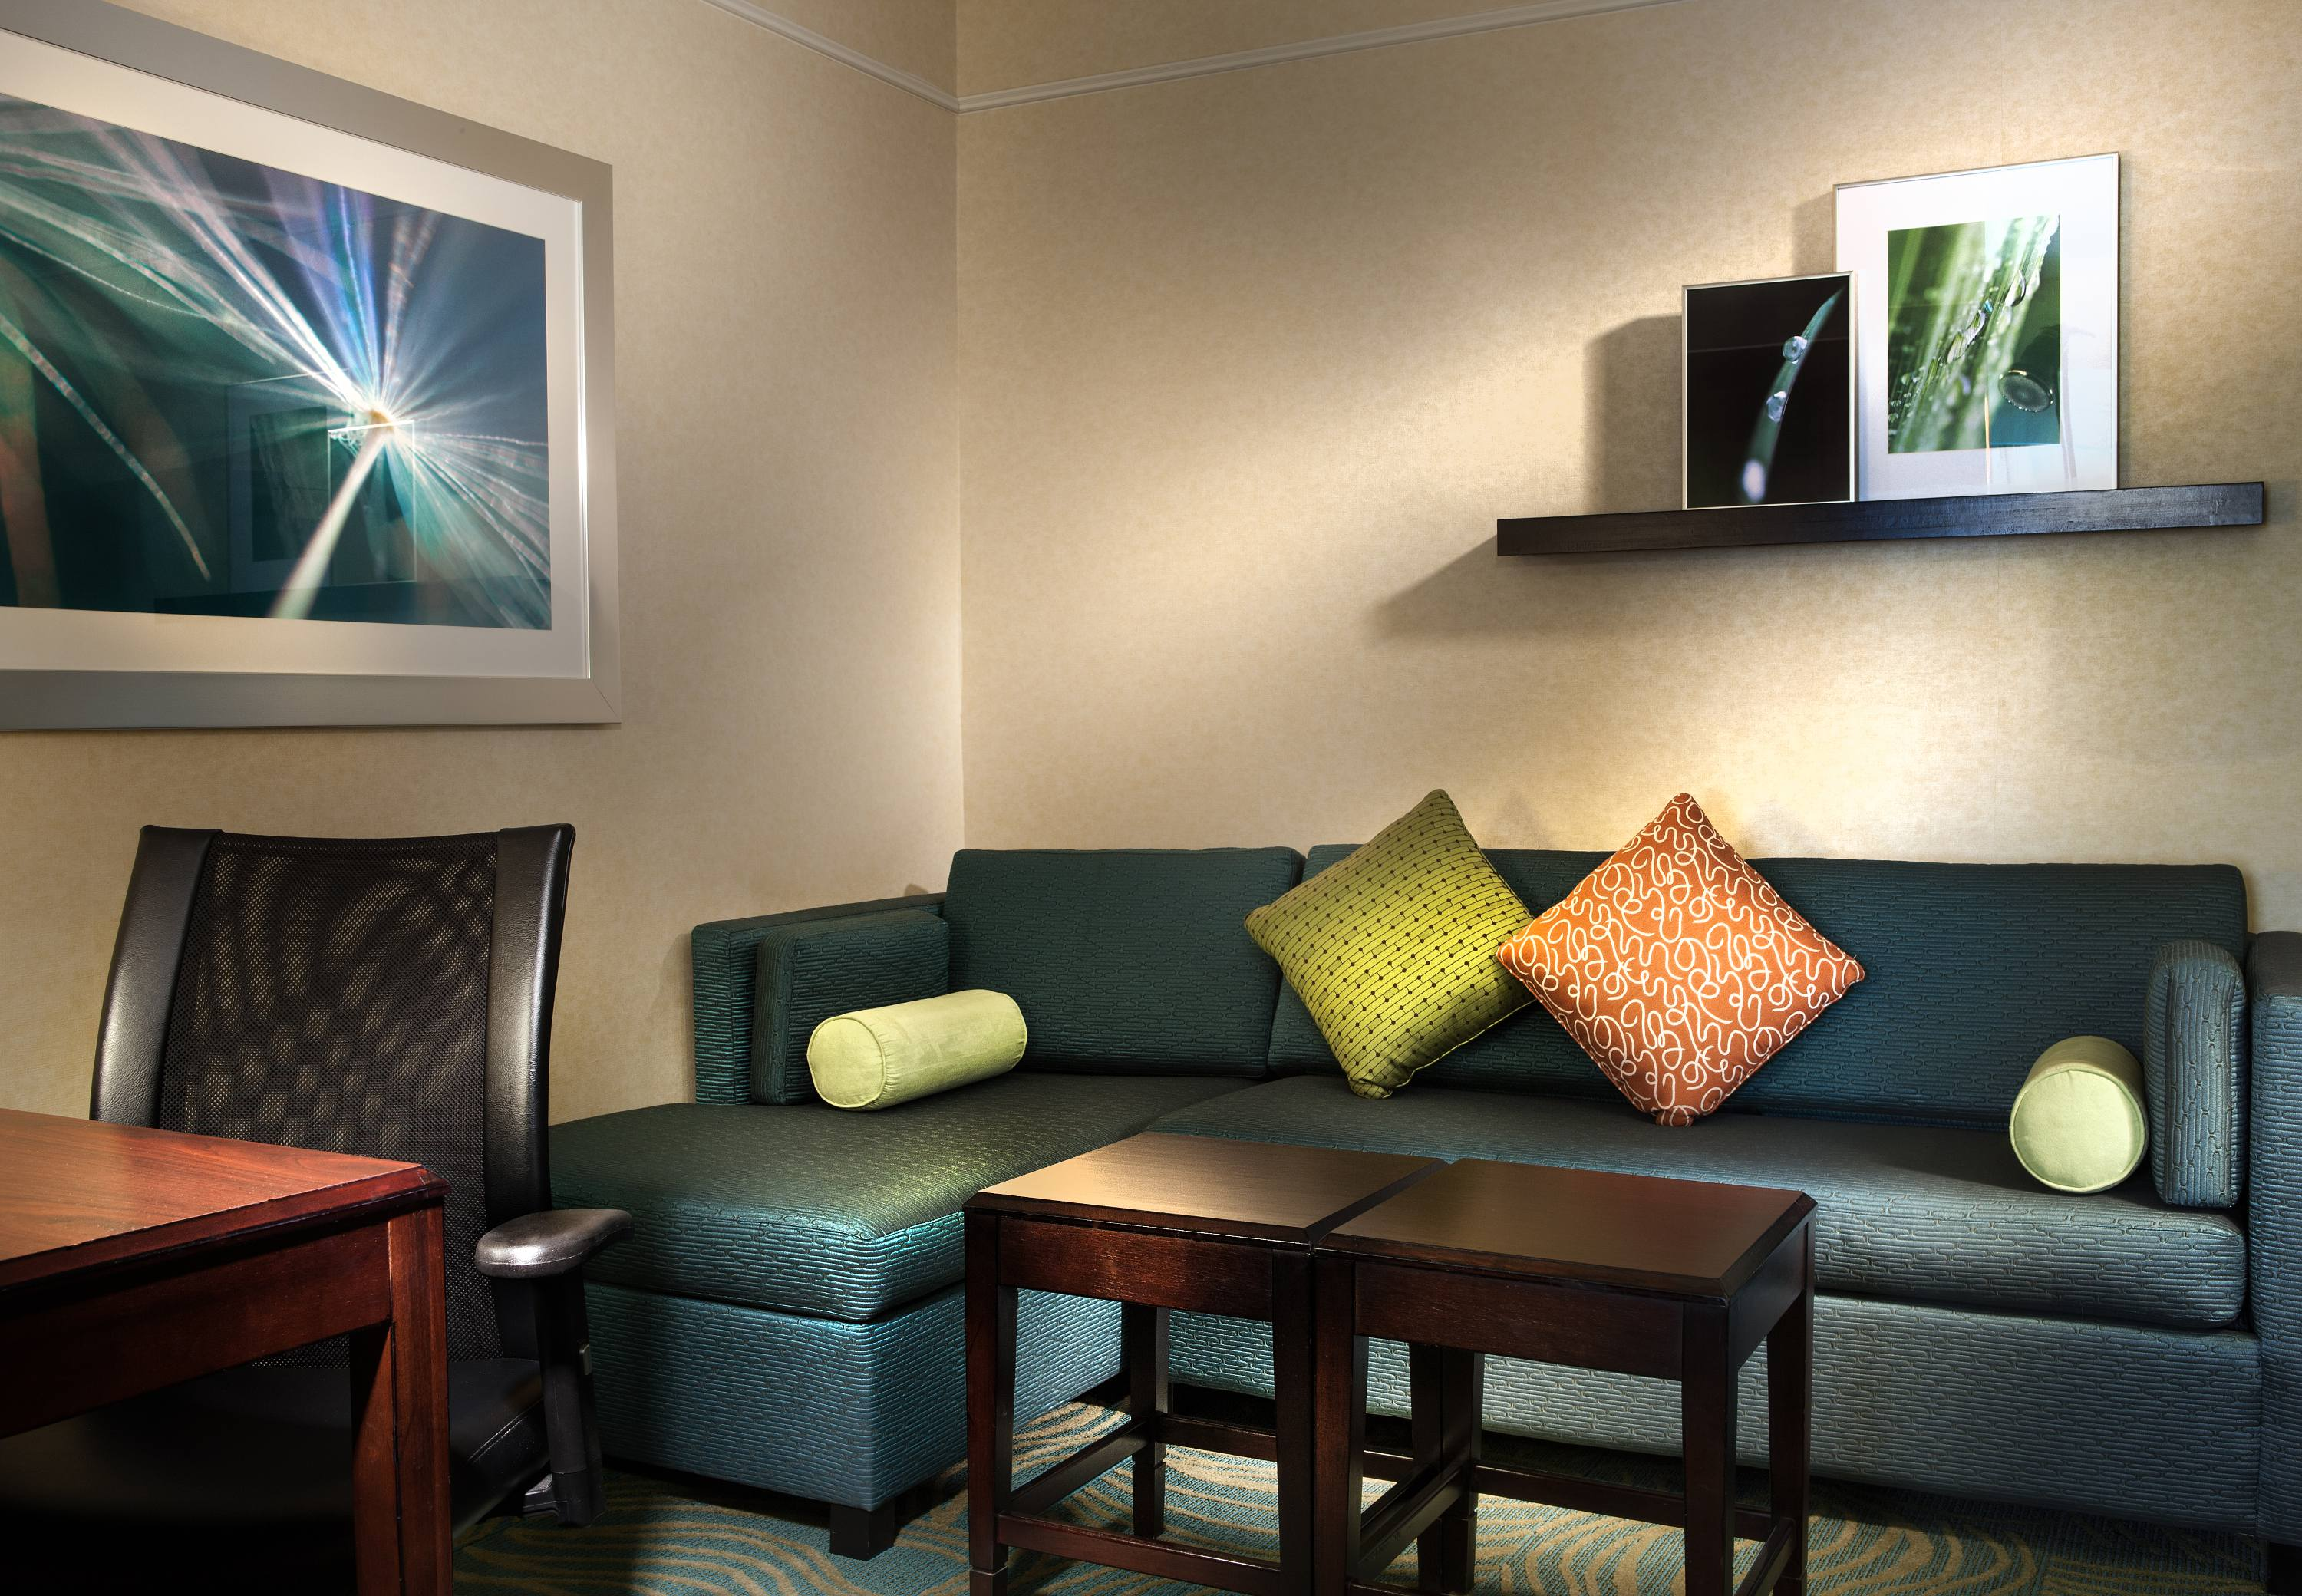 SpringHill Suites by Marriott Dallas DFW Airport North/Grapevine image 10